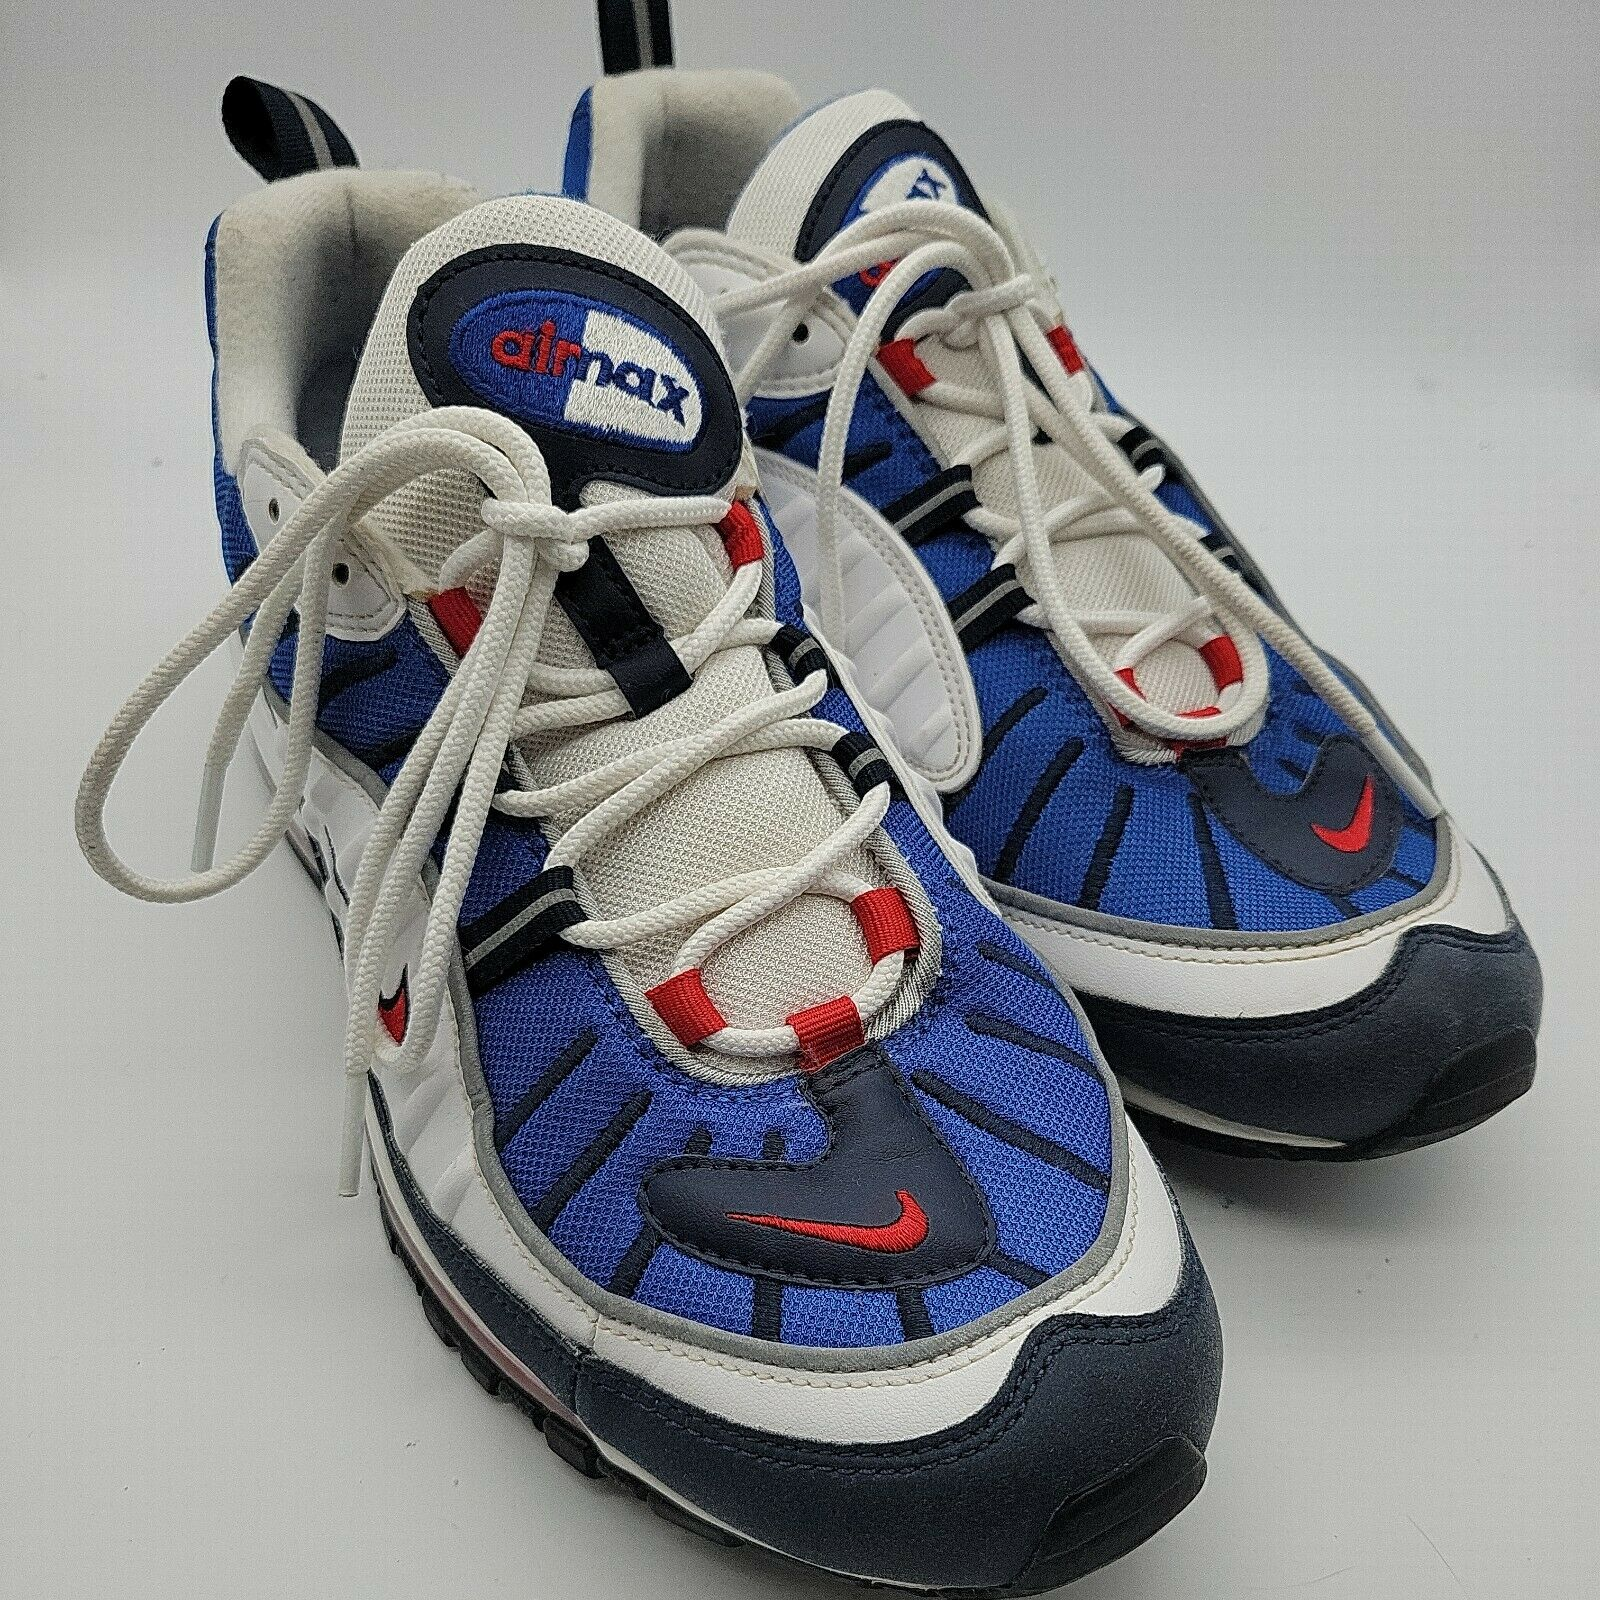 Size 13 - Nike Air Max 98 Gundam 2018 - 640744-100 for sale online ...